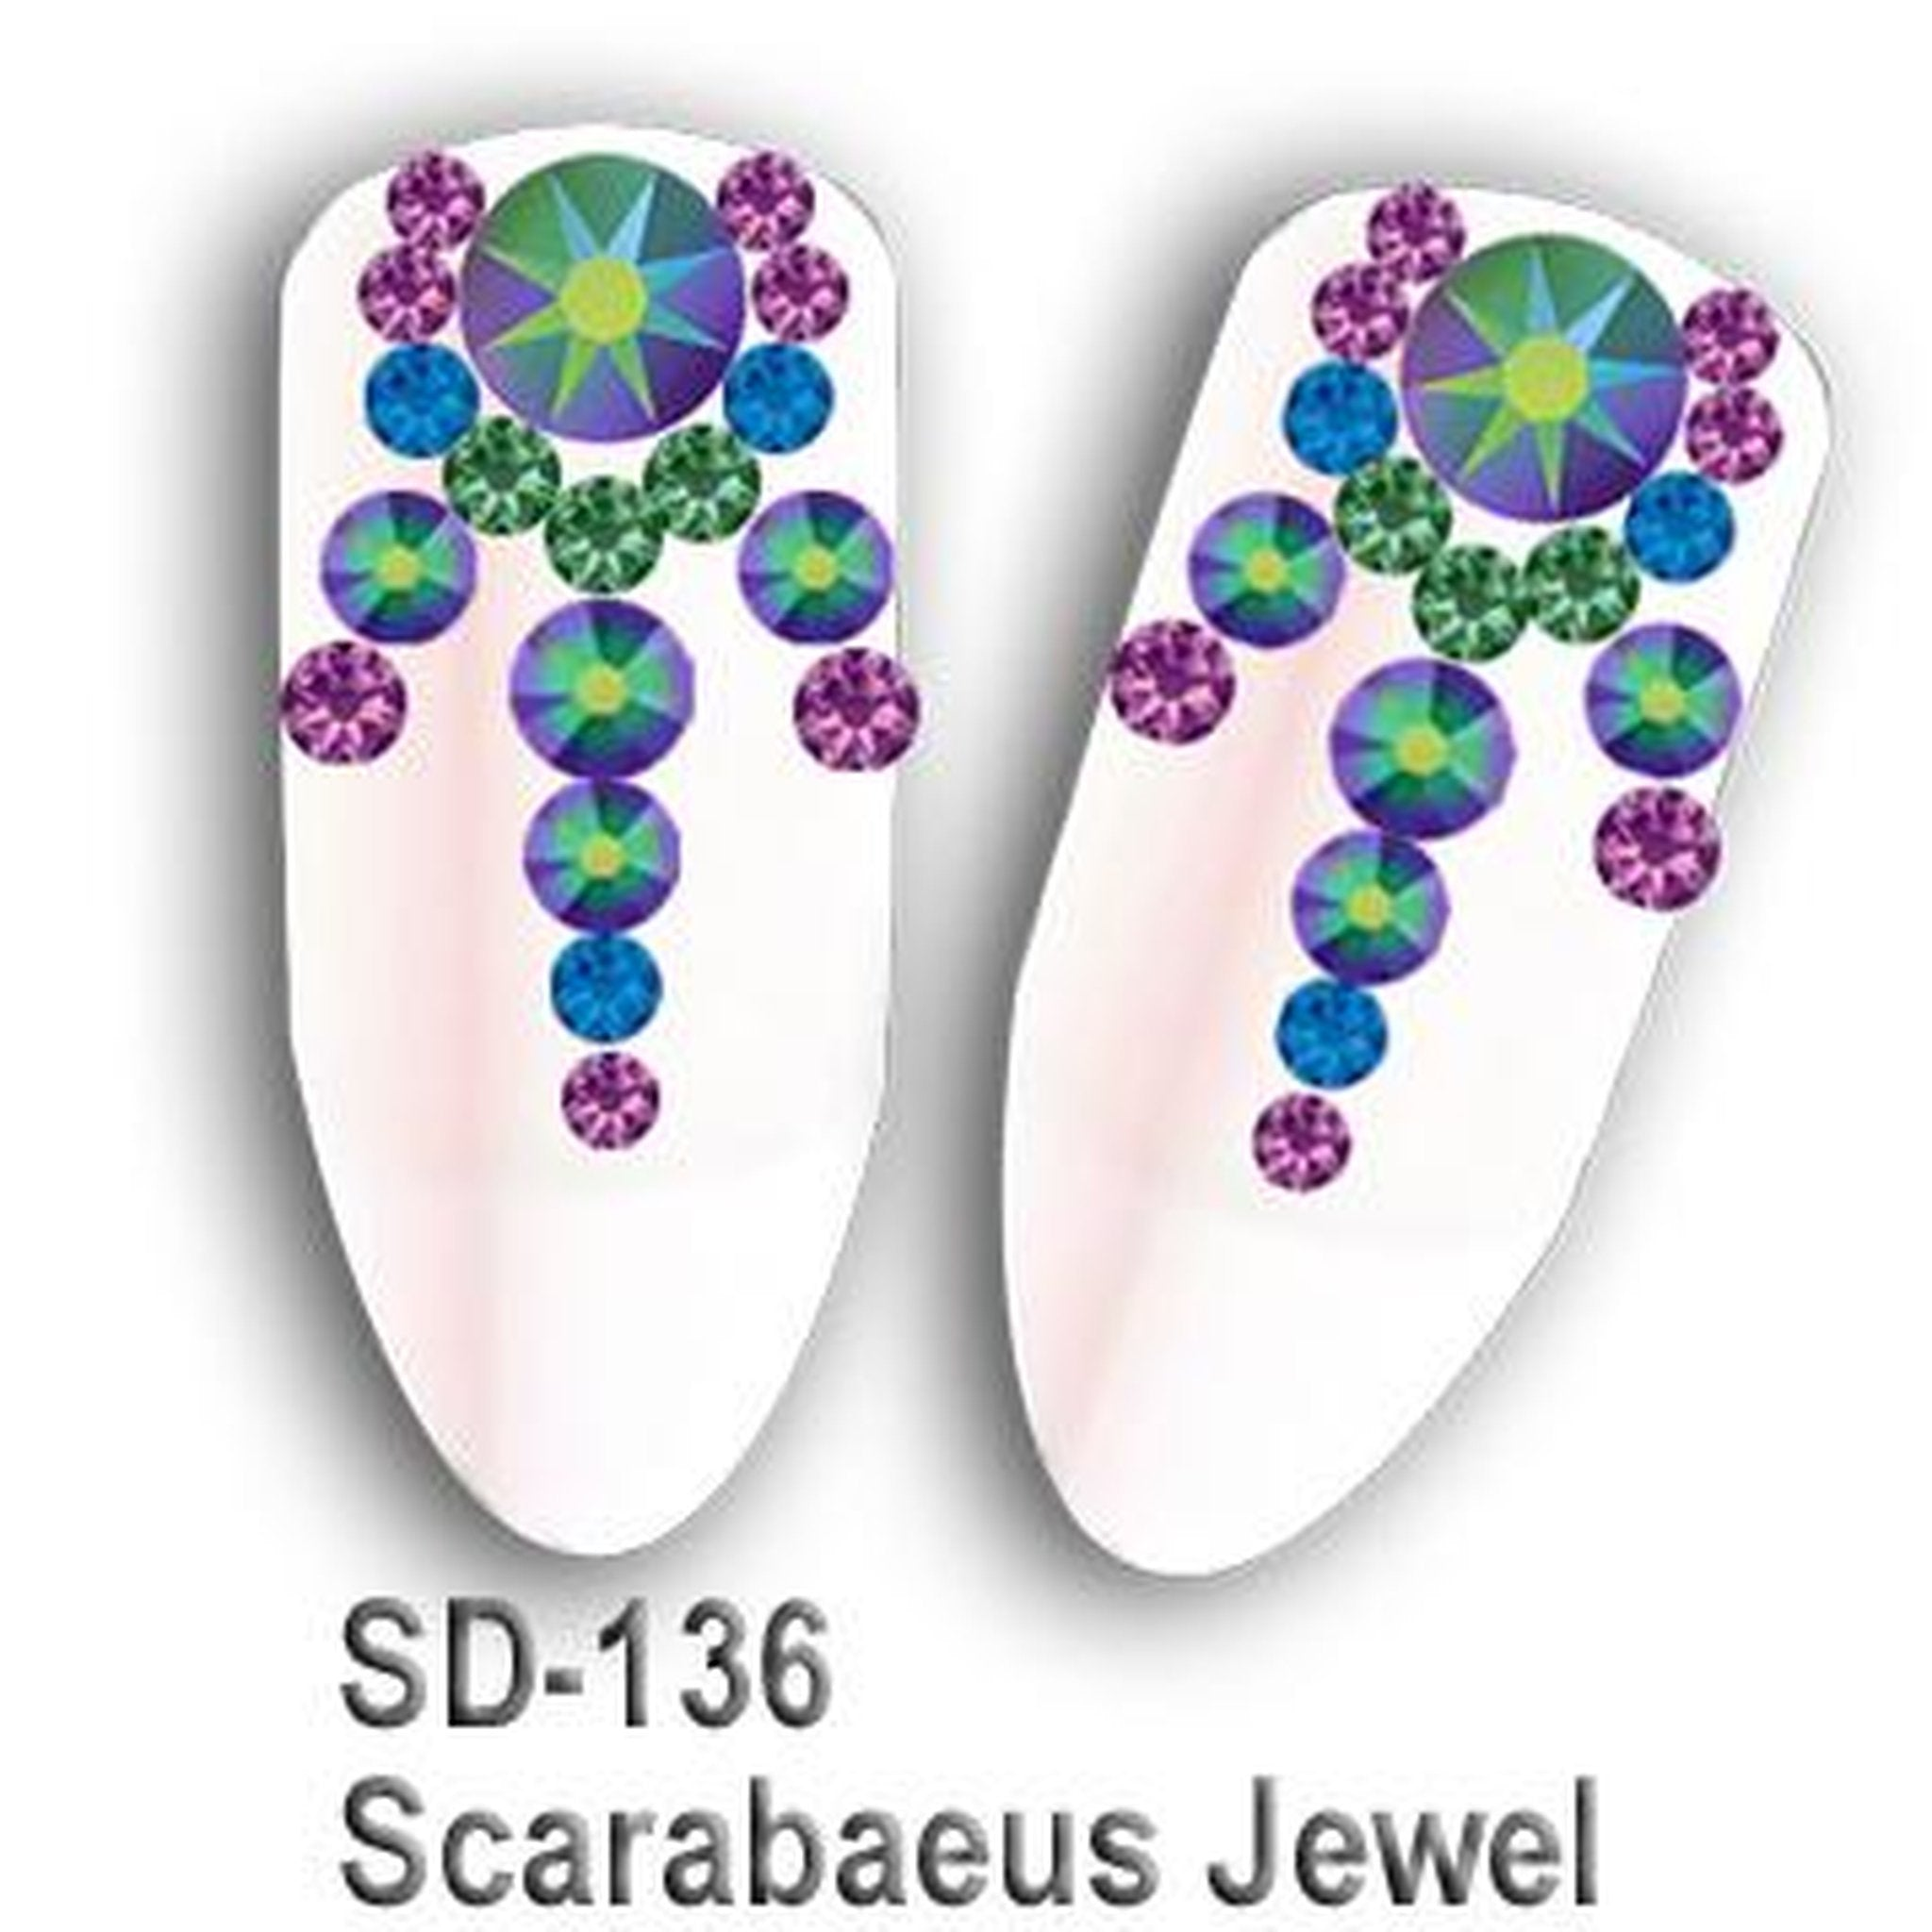 KIT SCARABAEUS JEWEL-Gel Essentialz